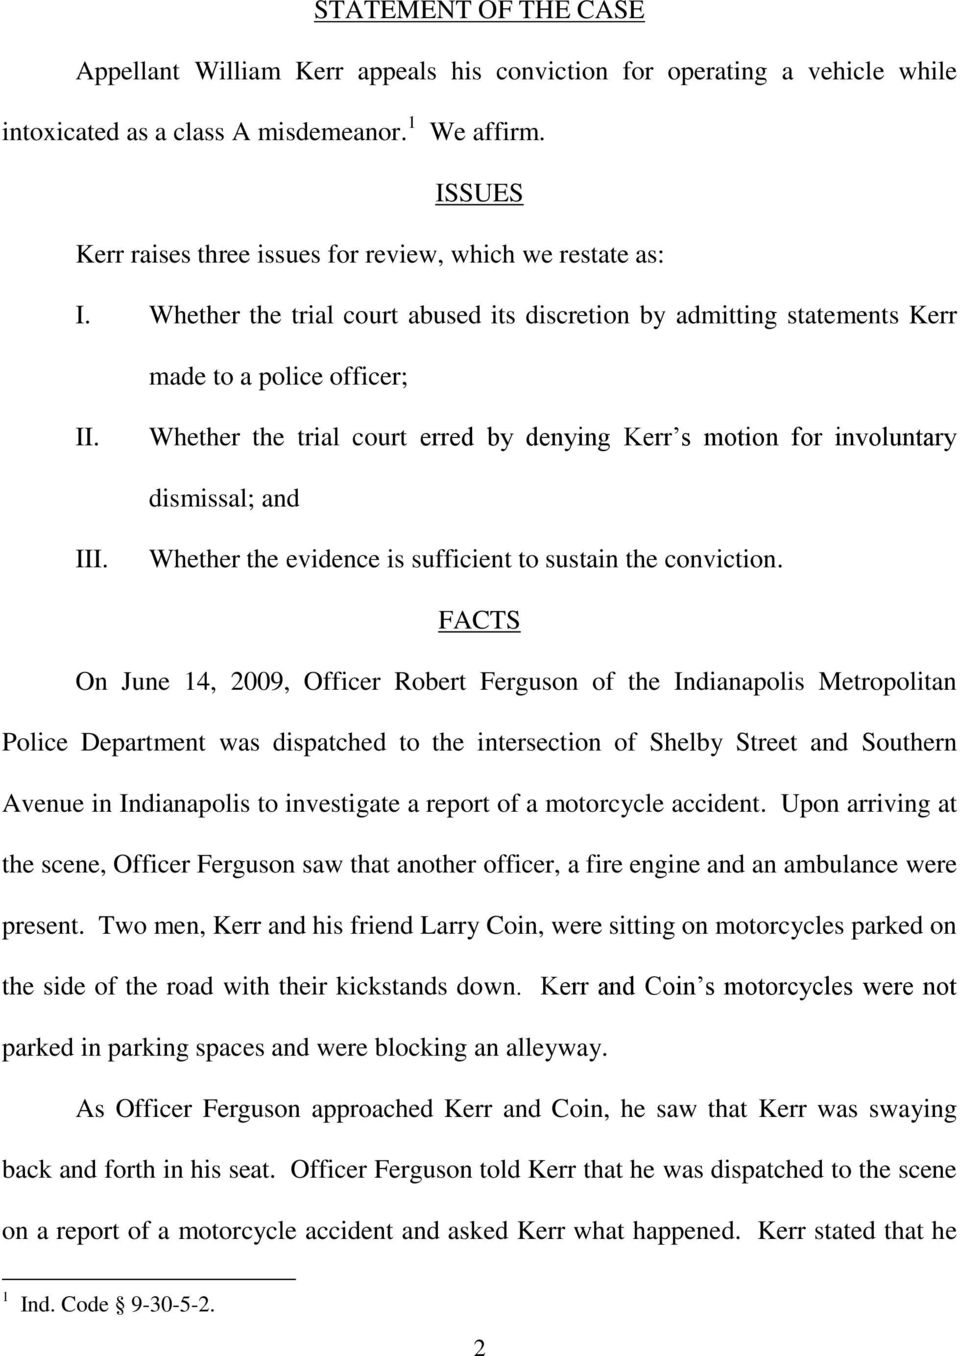 Whether the trial court erred by denying Kerr s motion for involuntary dismissal; and III. Whether the evidence is sufficient to sustain the conviction.